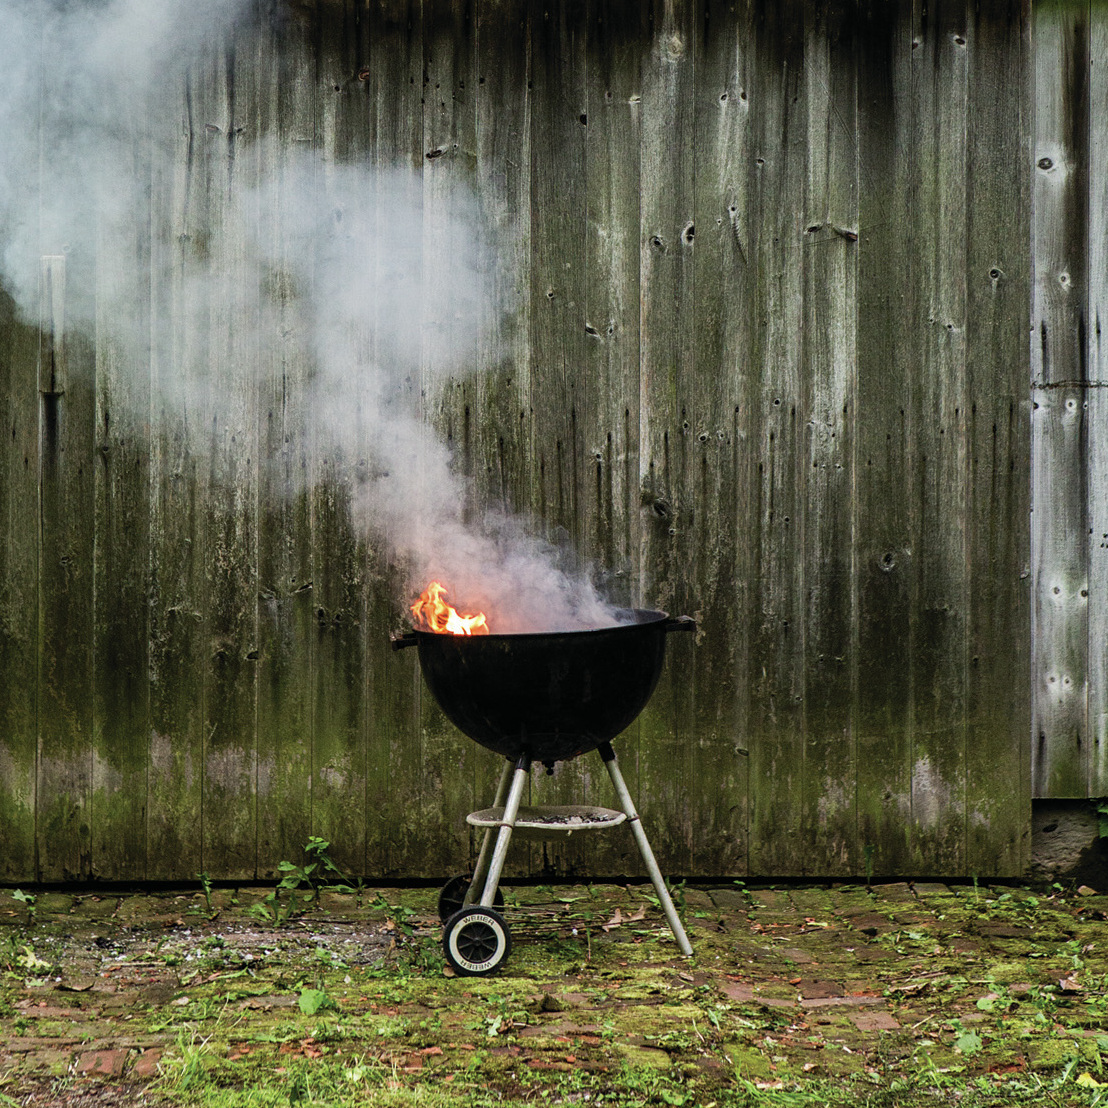 Bon Appetit editor Adam Rapoport prefers to grill with hardwood lump charcoal, instead of briquettes.